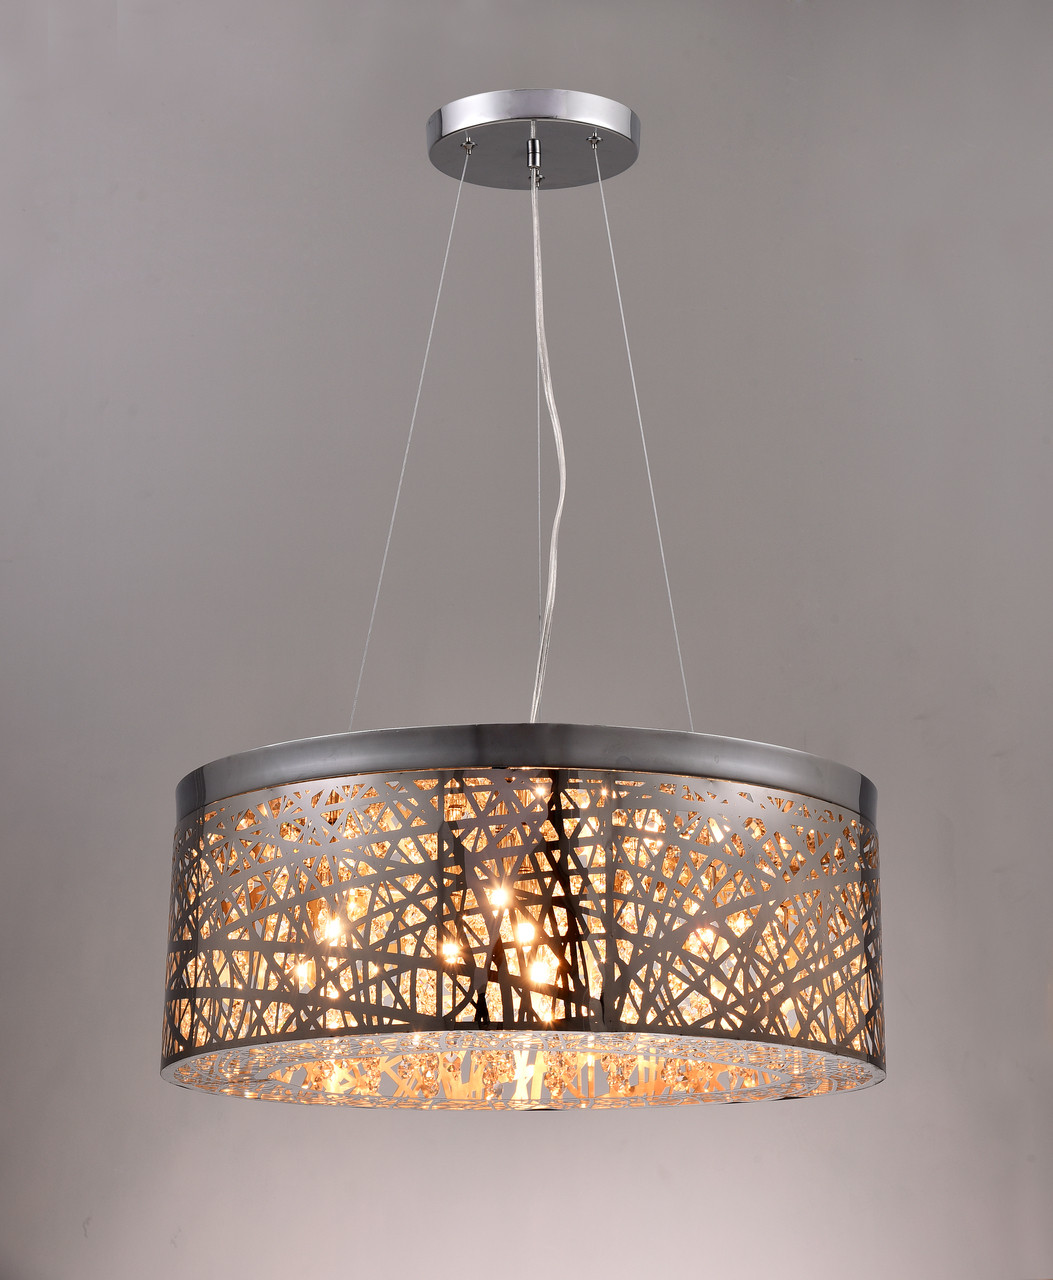 nine lamp round pendant light fixture toronto vaughan home decor. Black Bedroom Furniture Sets. Home Design Ideas